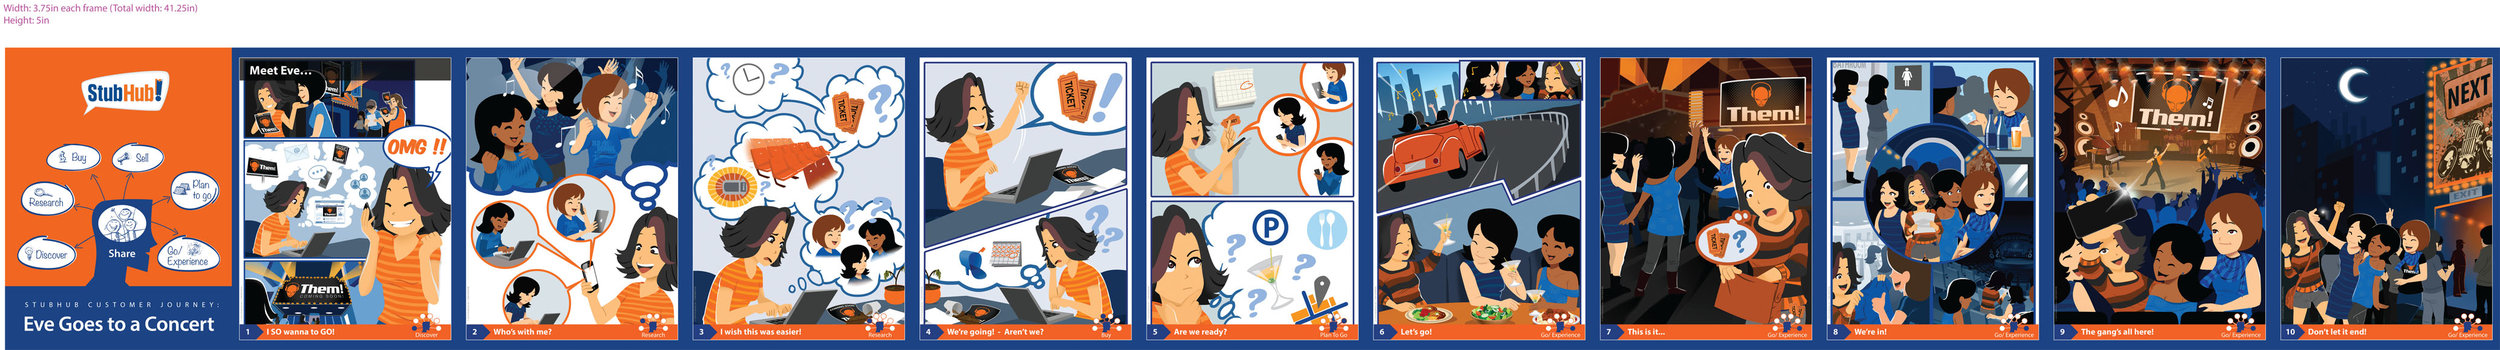 Story boards bringing the customer journey to life